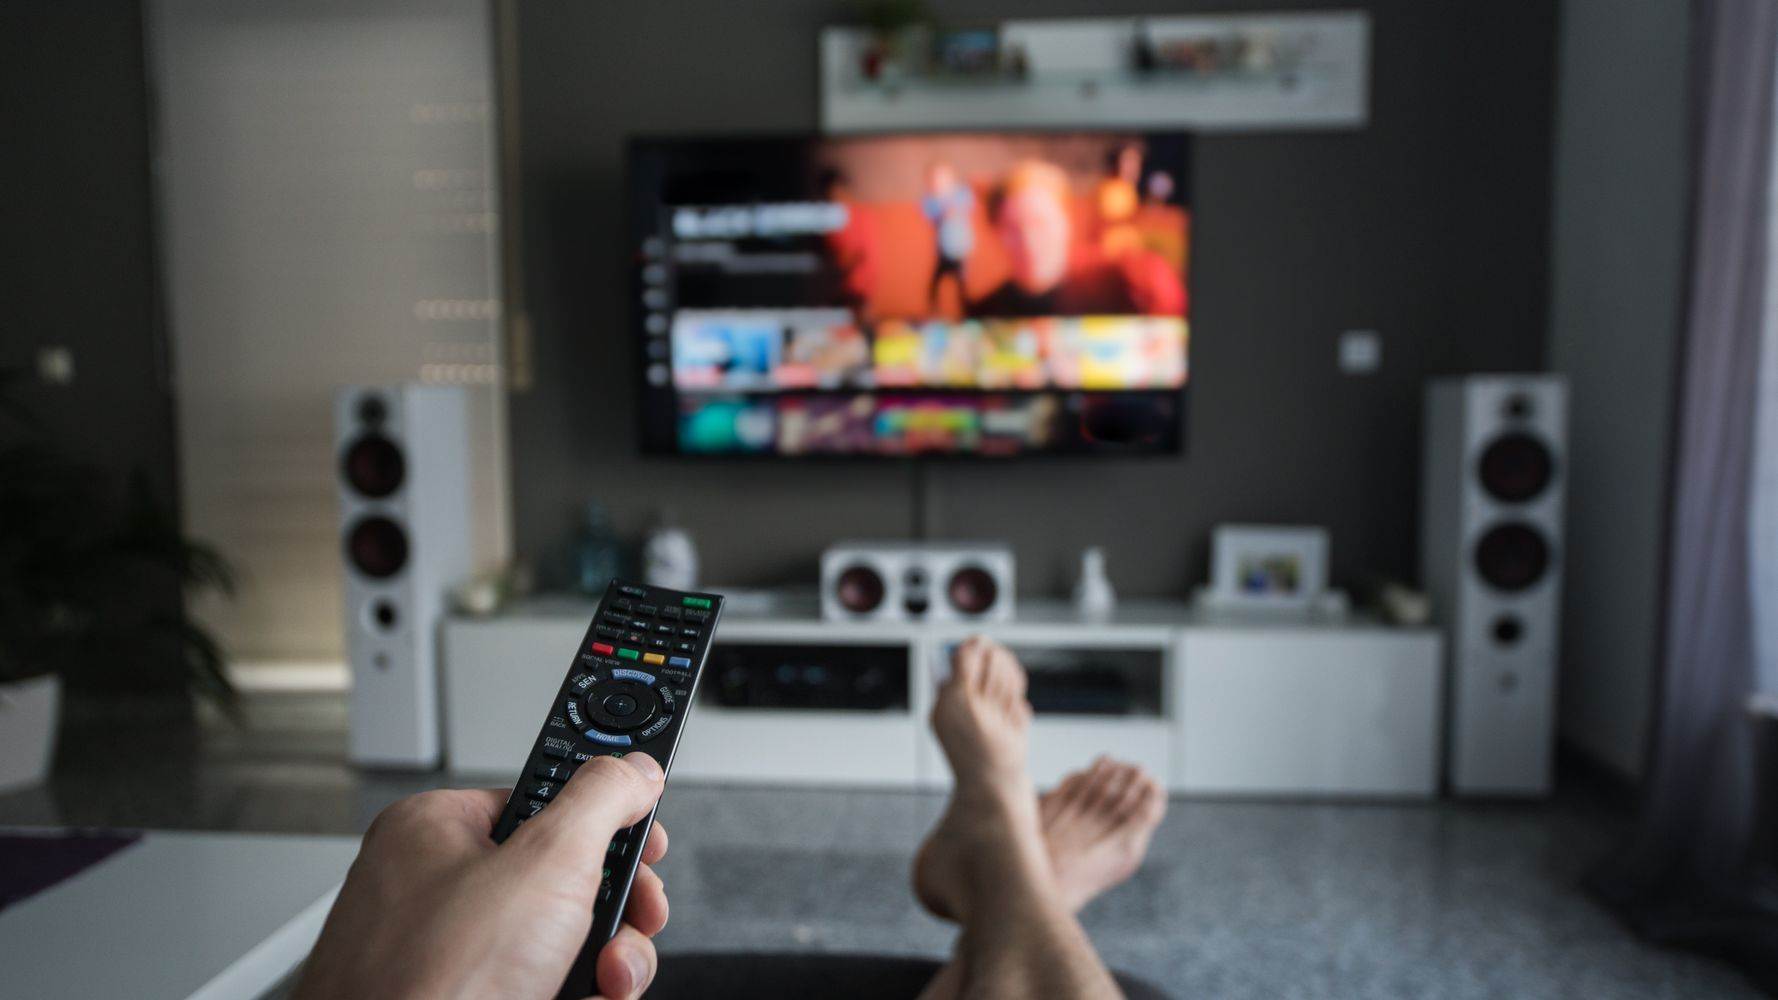 The Best Black Friday TV Deals Of 2020 To Watch